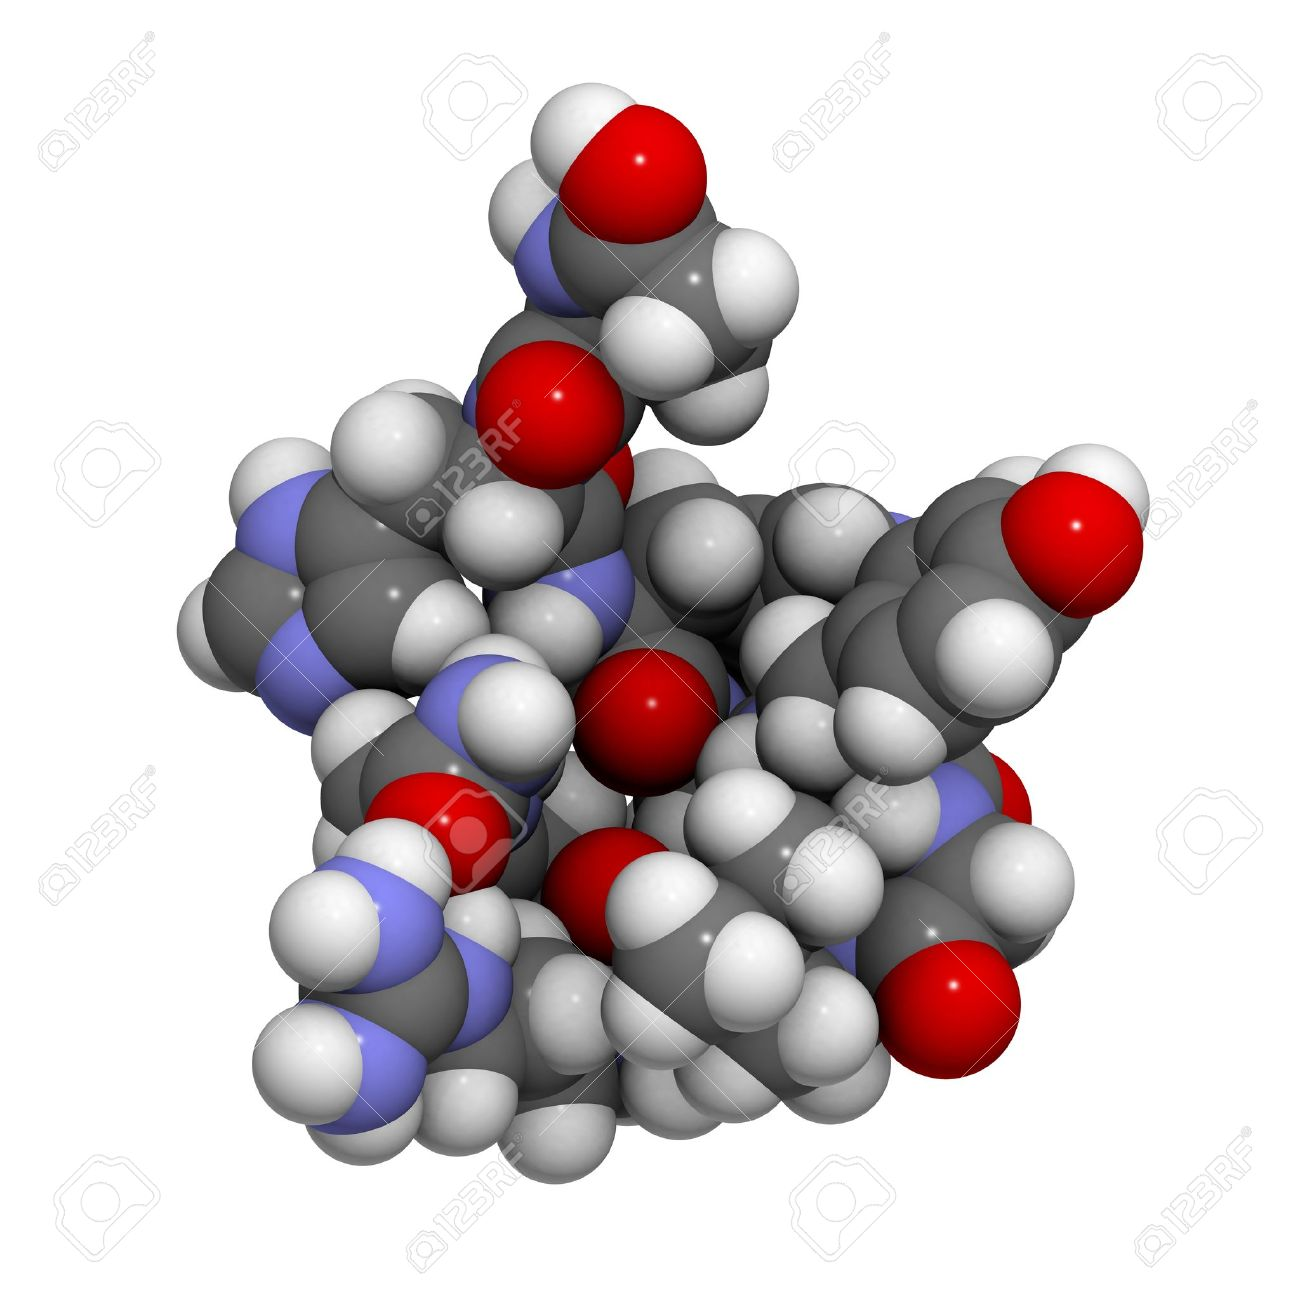 Chemical structure of a molecule of gonadotropin-releasing hormone (GnRH, Luteinizing-hormone-releasing hormone, LHRH, luliberin). GnRH is a peptide hormone that causes release of follicle-stimulating hormone (FSH) and luteinizing hormone (LH) from the an Stock Photo - 16647721